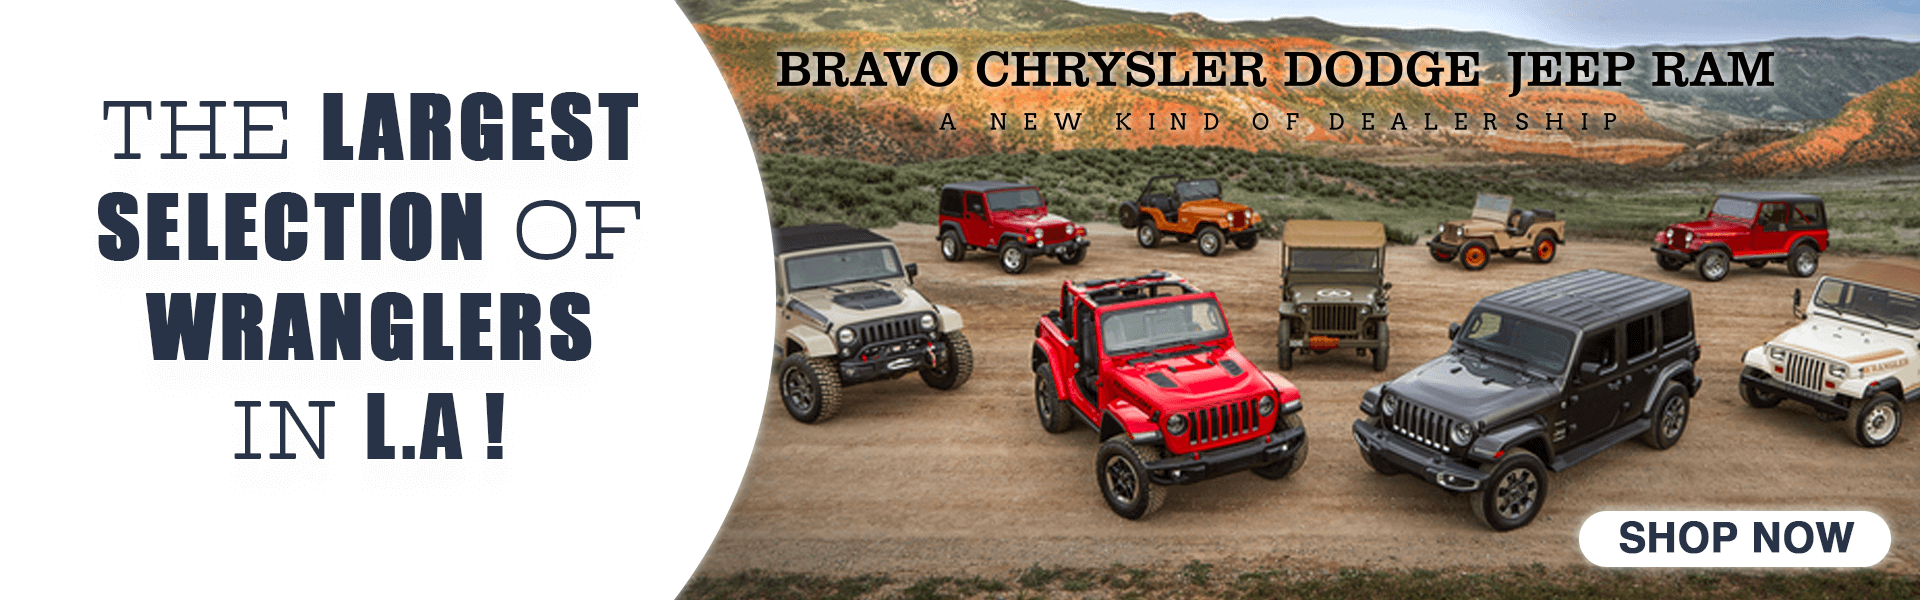 Largest Selection of Wranglers